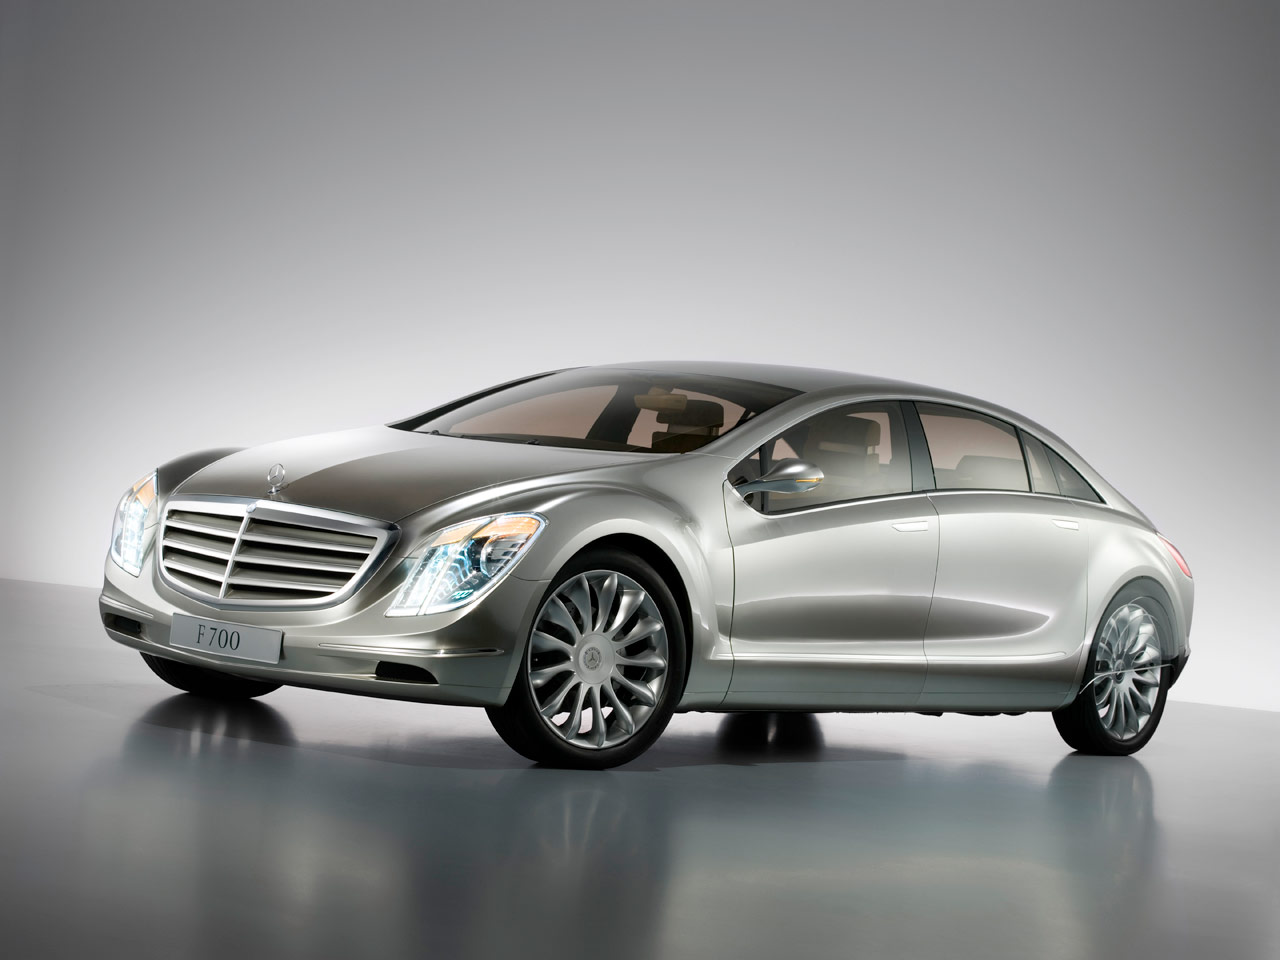 http://www.carbodydesign.com/archive/2007/09/20-mercedes-benz-f700-concept/Mercedes-Benz-F700-Concept-8-lg.jpg